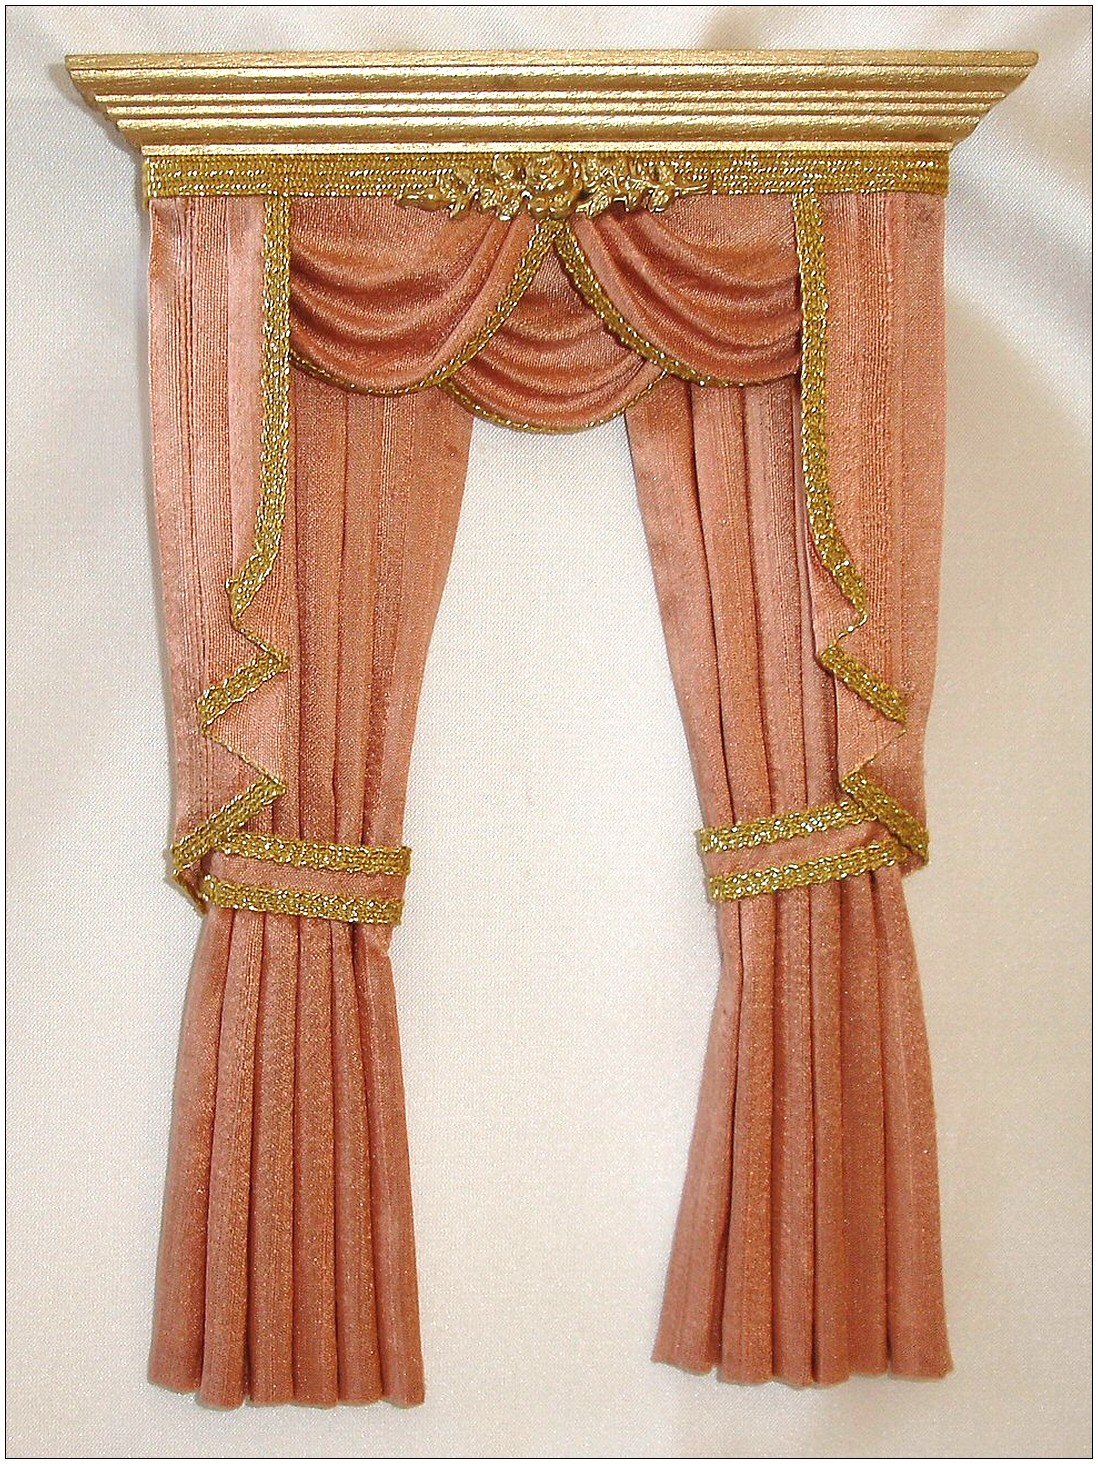 How To Hang A Valance And Curtains Balloon Bay Window Curtain Rods Beaded